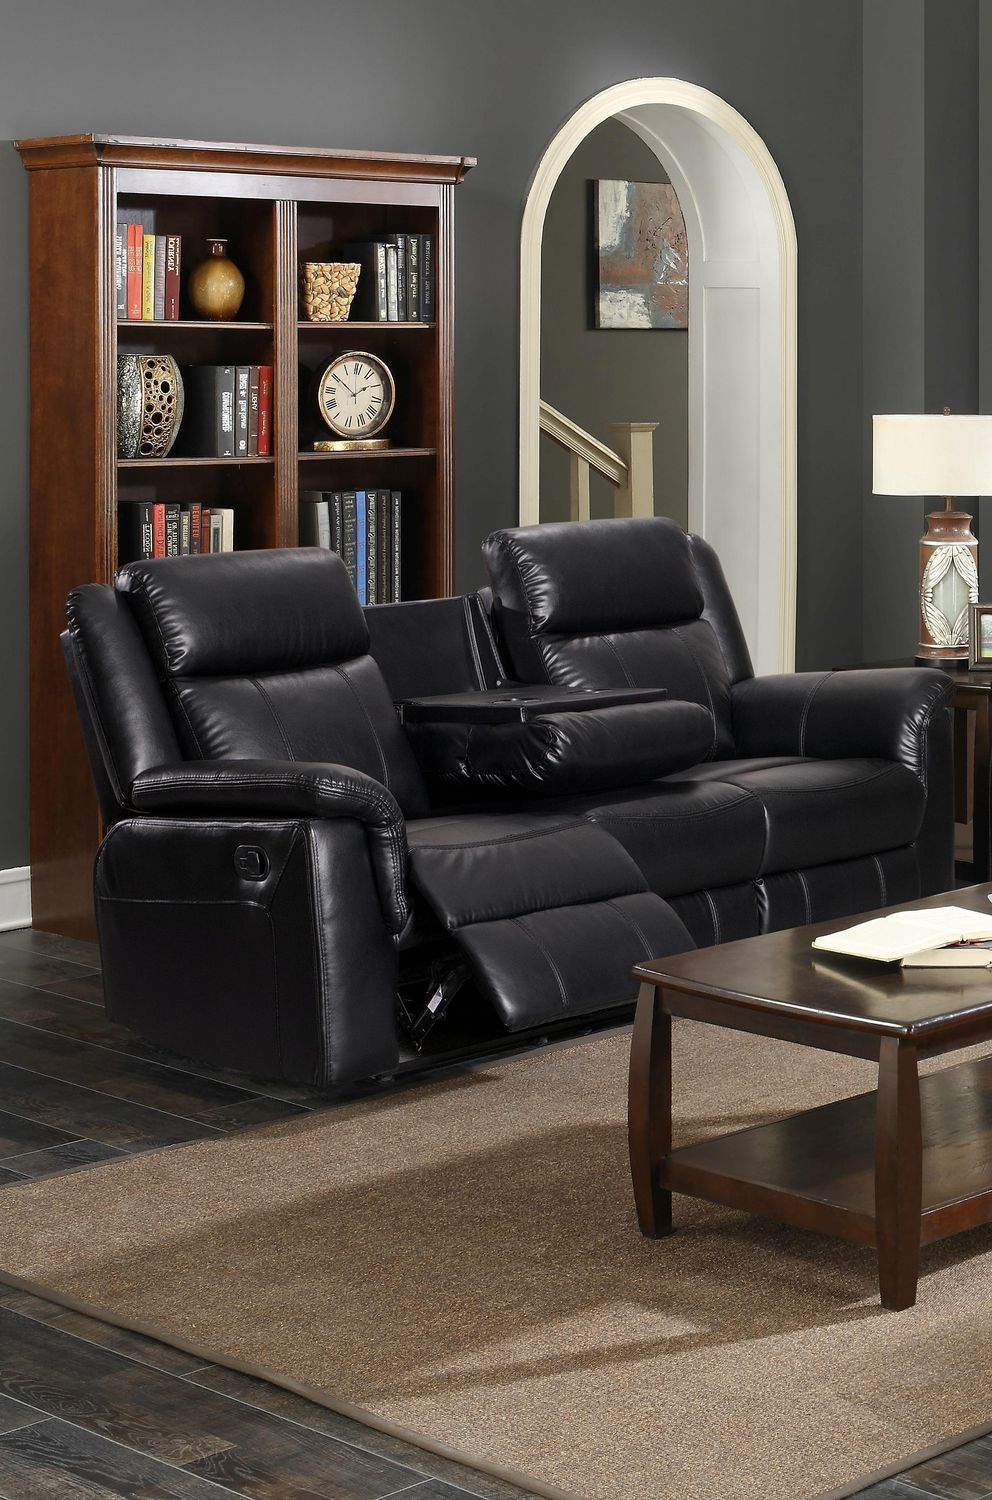 K Living Emma Leathaire Recliner Sofa With Drop Down Tray In Black Walmart Canada